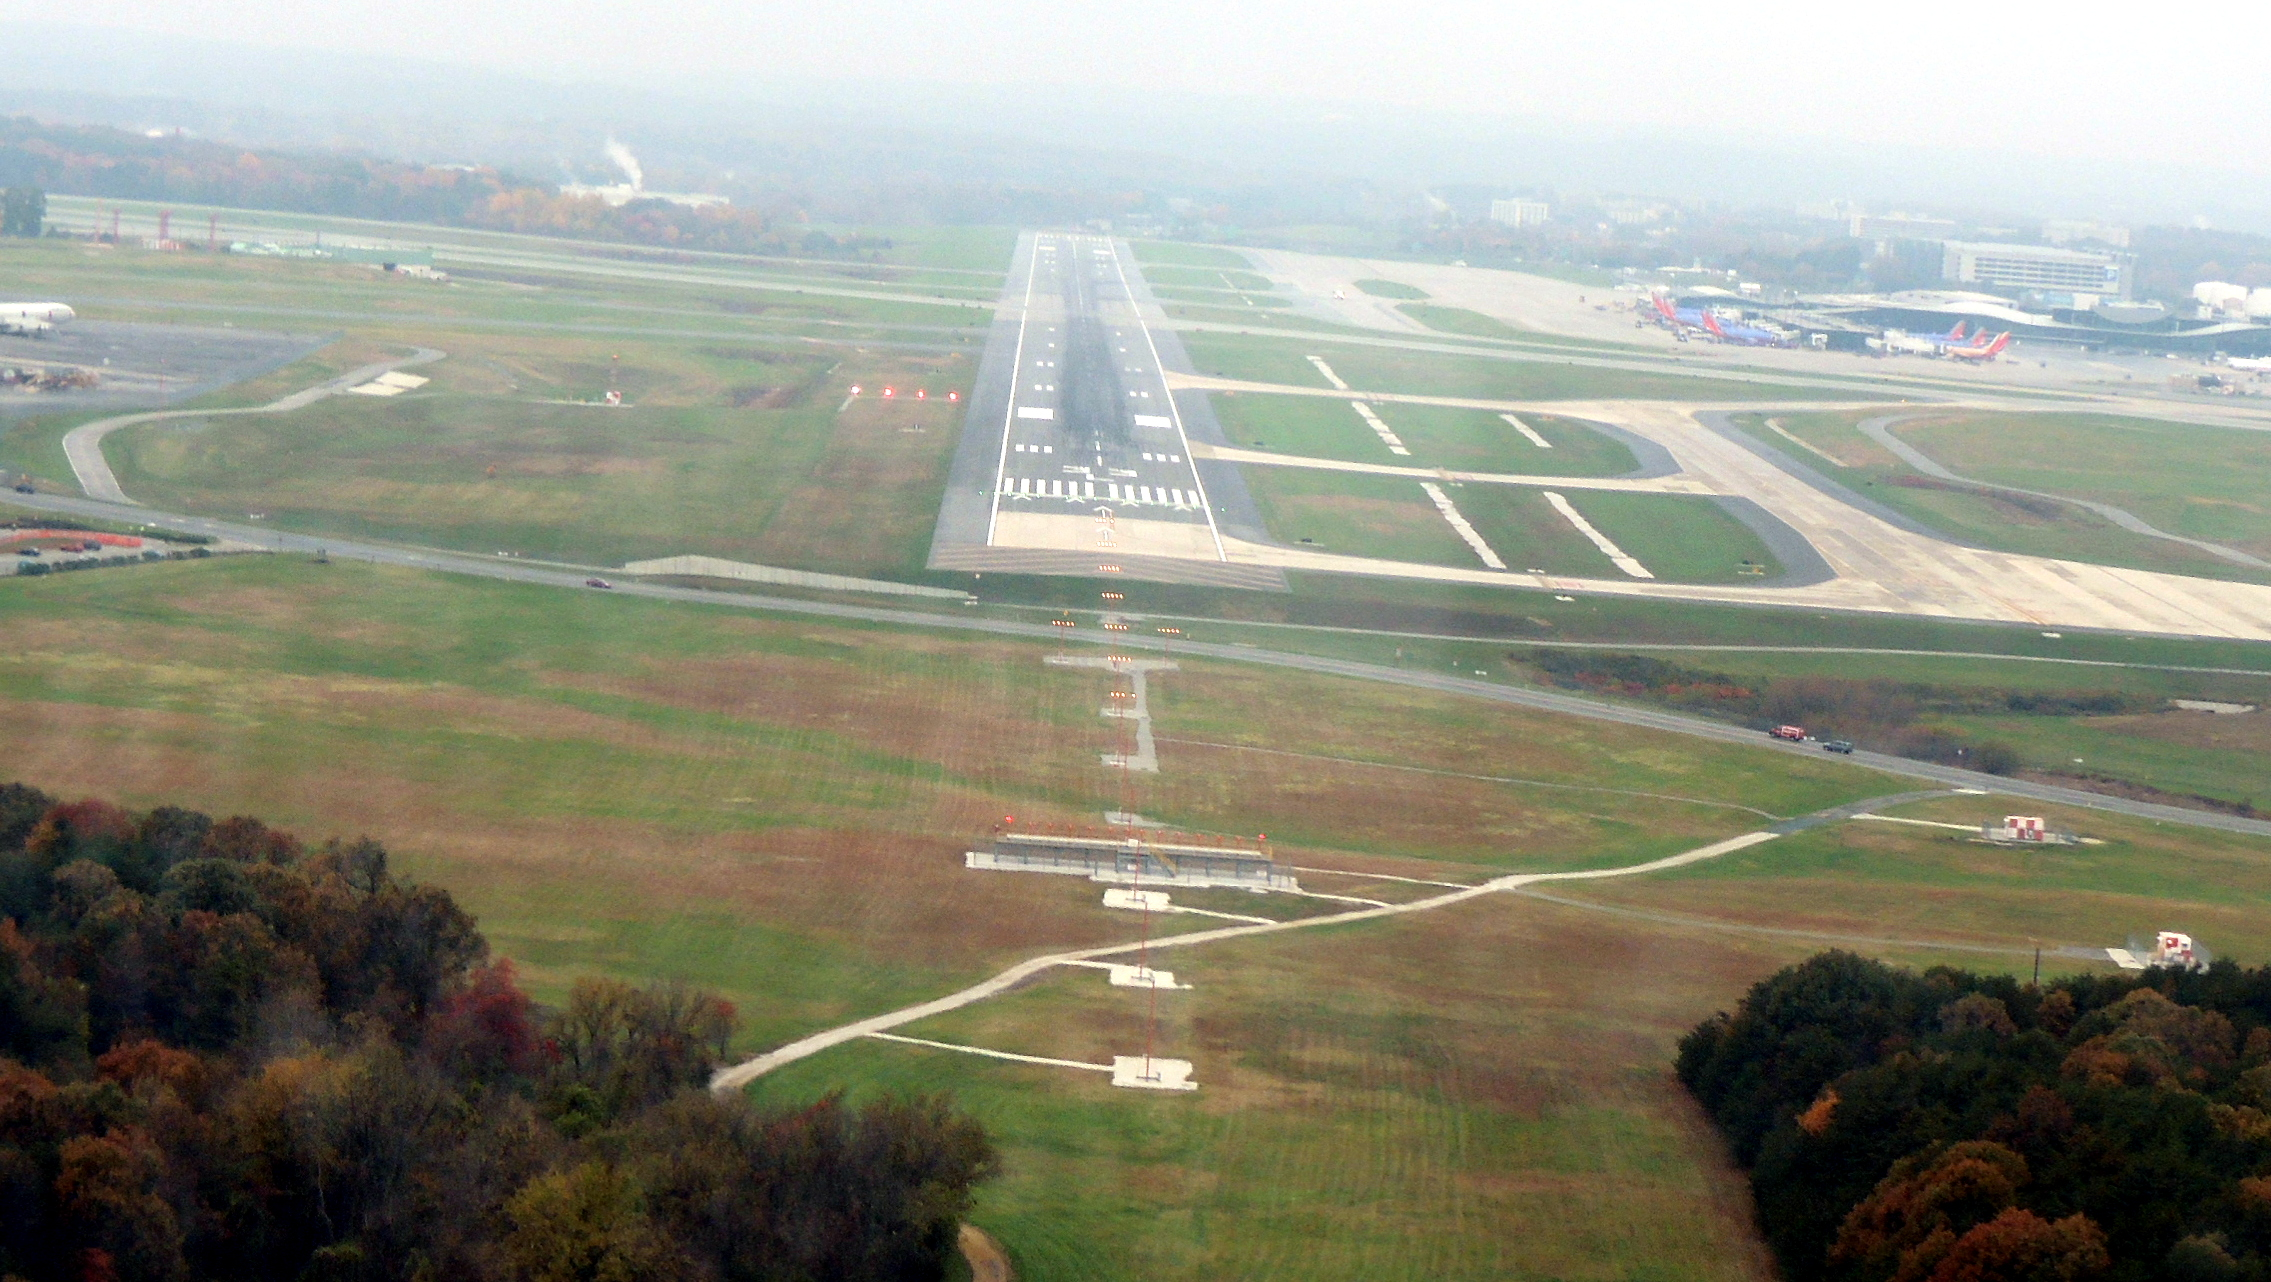 Cleared to land 33L at BWI (Baltimore MD)